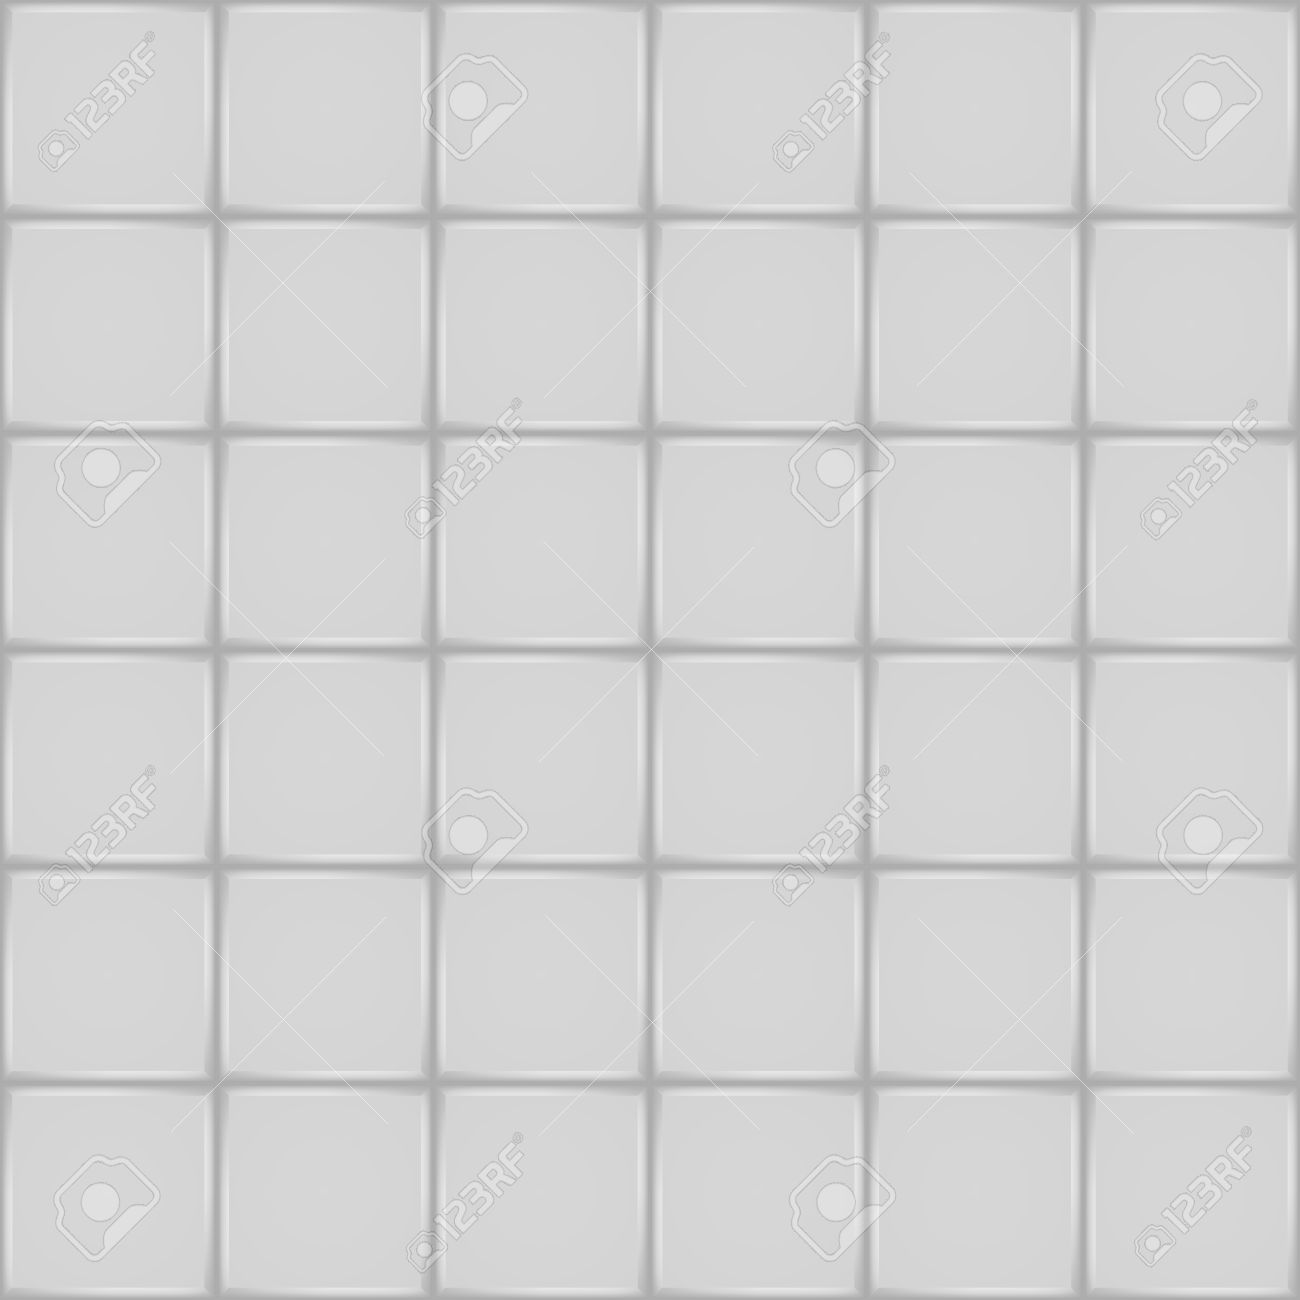 Vector   White Ceramic Tile Bathroom Wall Or Floor Seamless Pattern